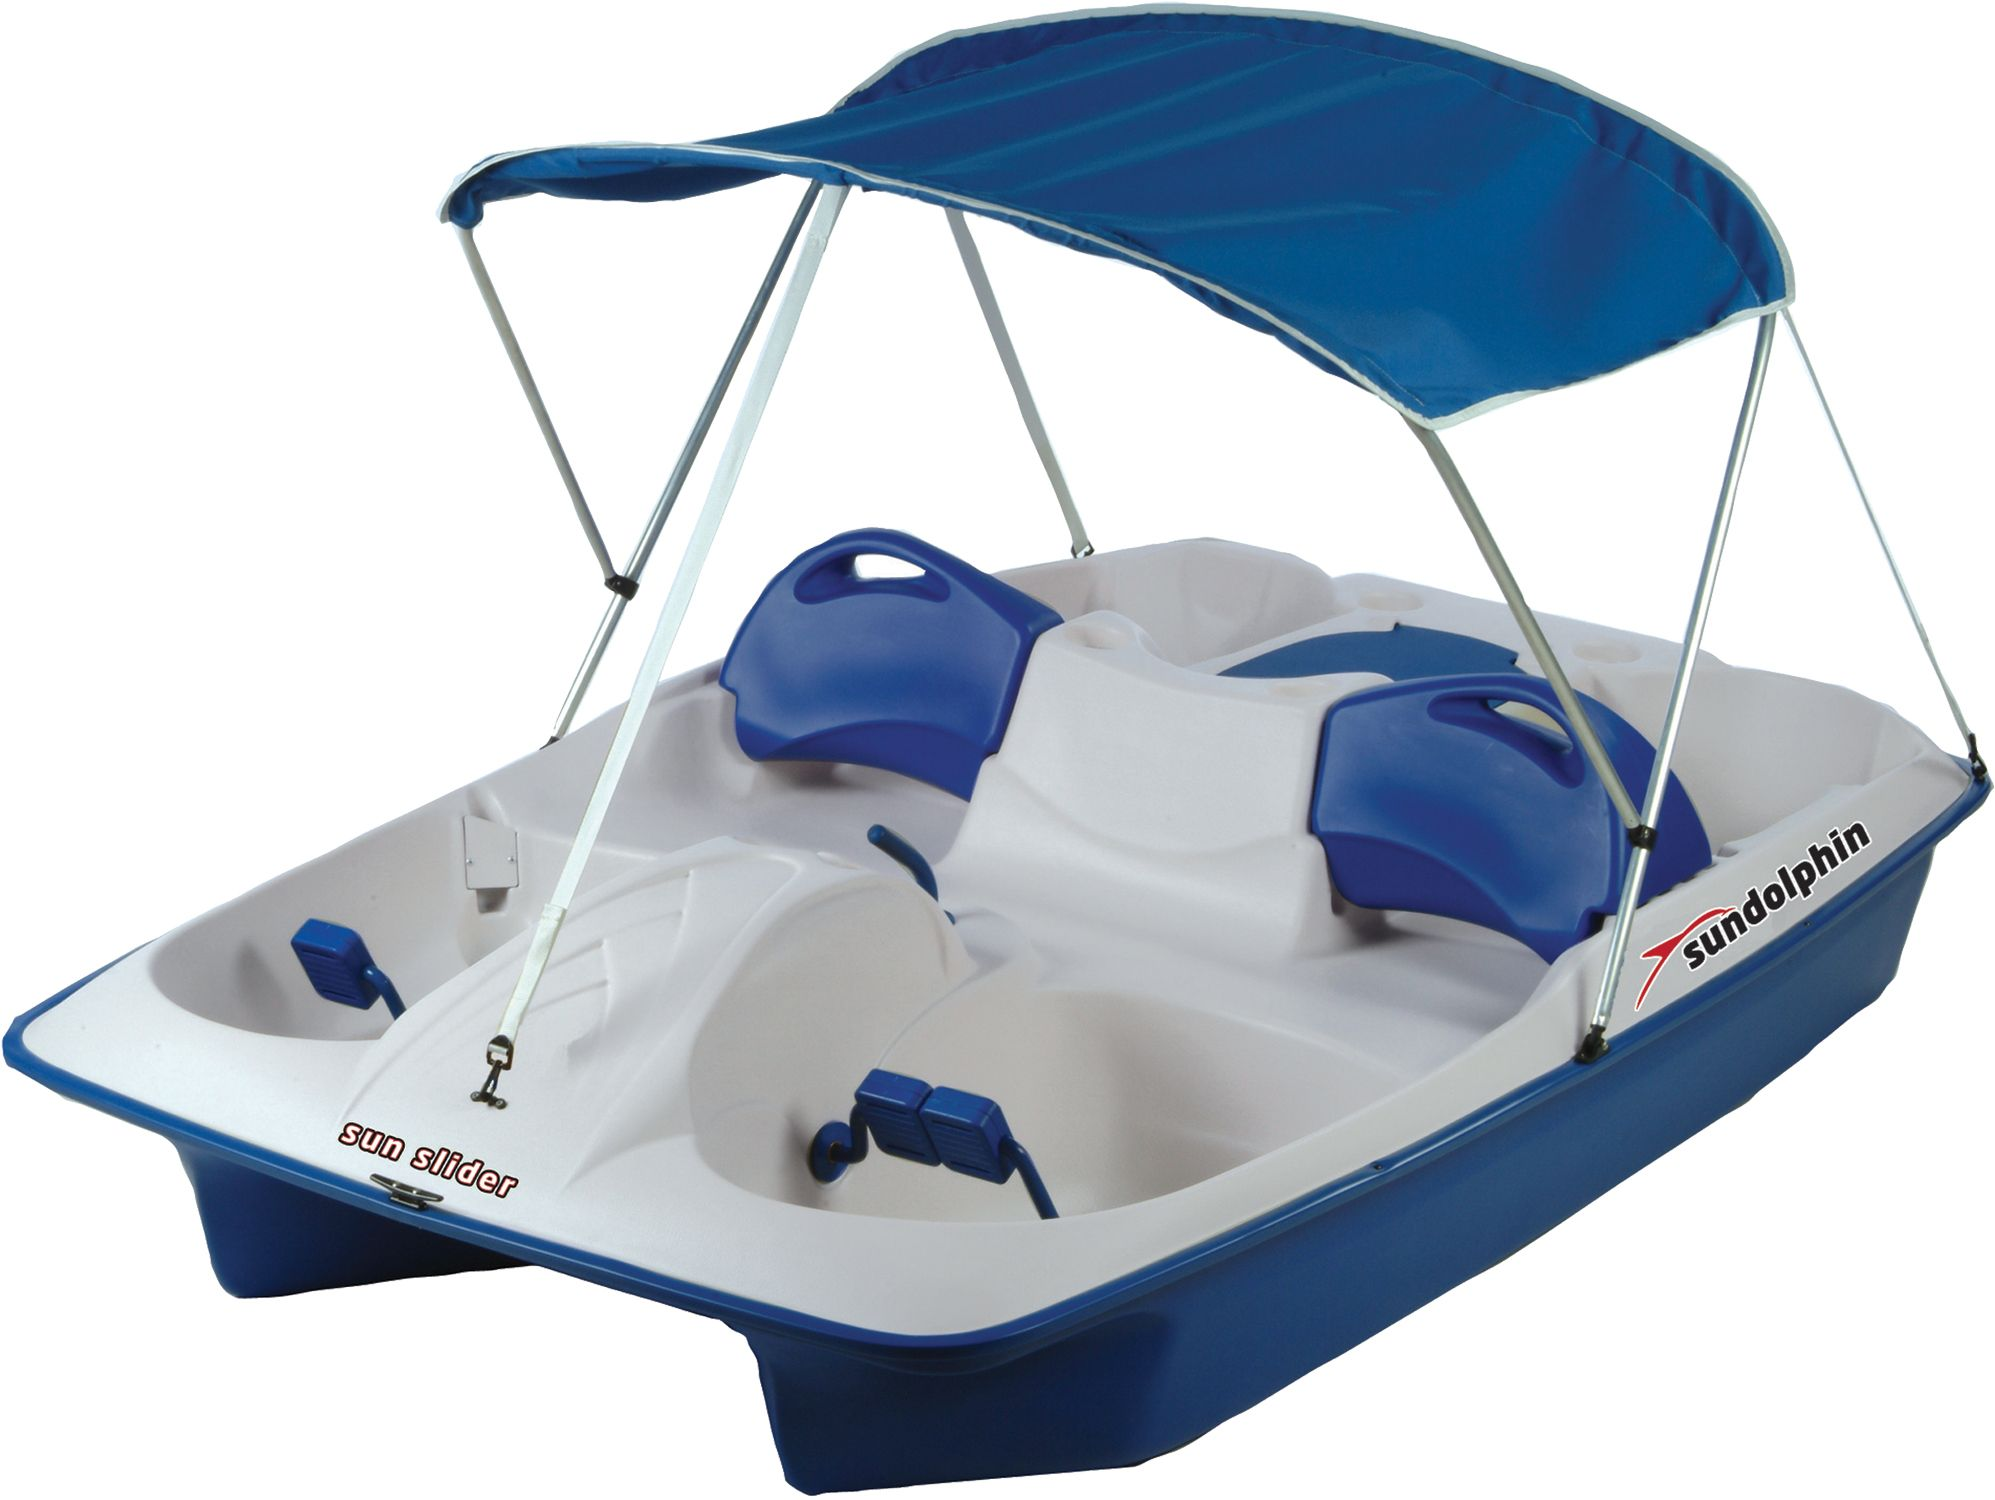 Sun Dolphin Sun Slider 5-Seated Pedal Boat with Canopy | DICK'S ...